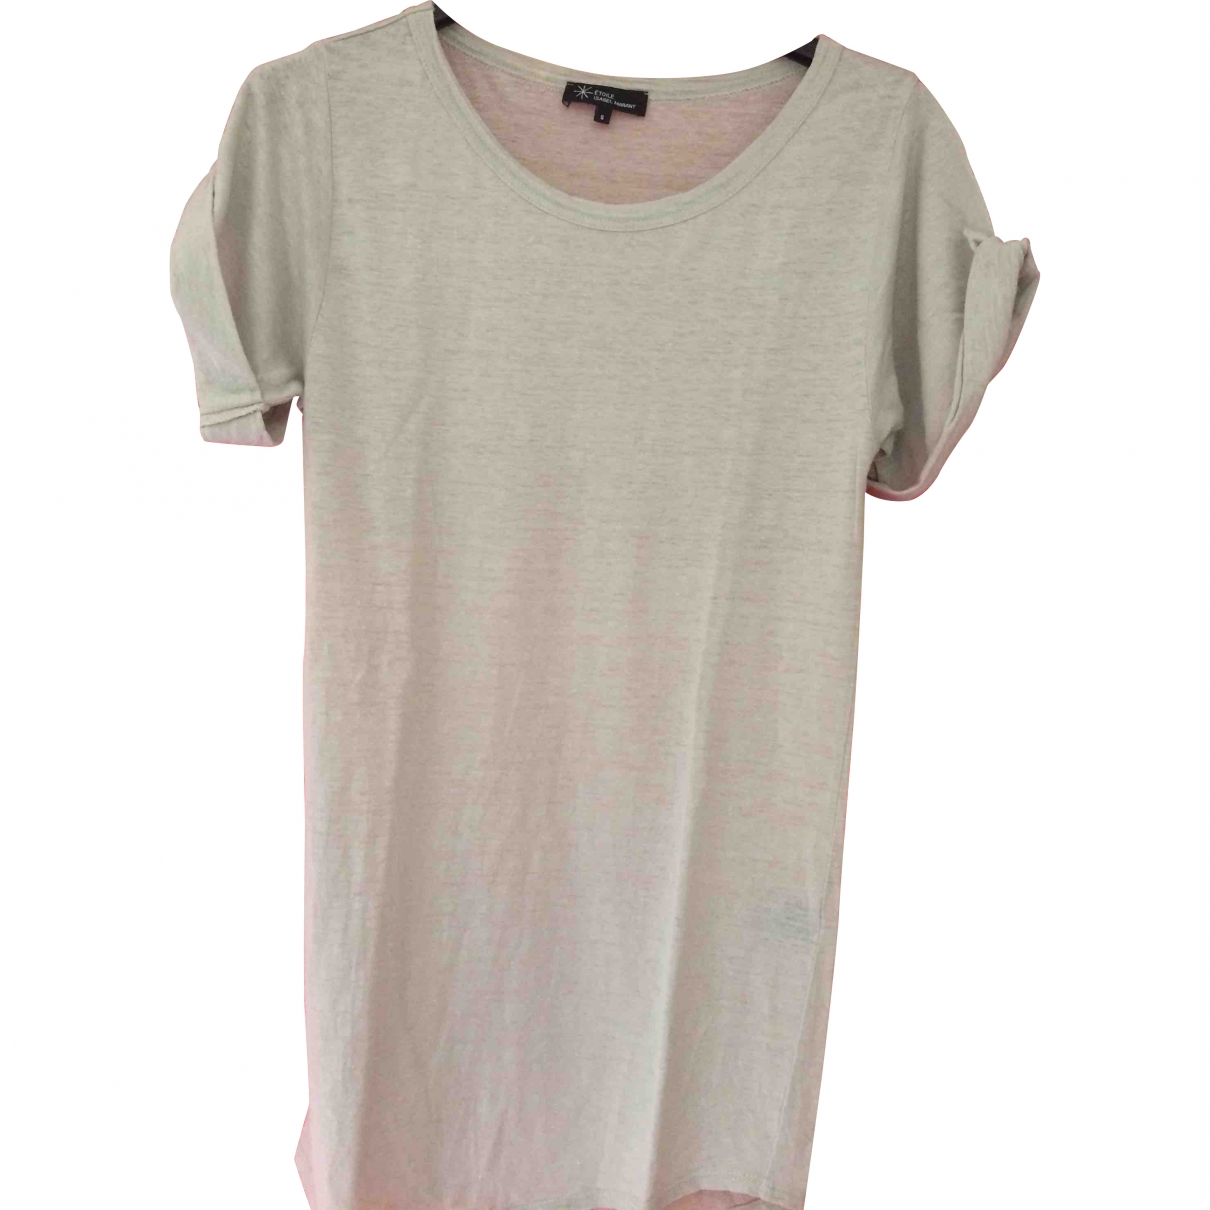 Isabel Marant Etoile \N Ecru Linen  top for Women 38 FR